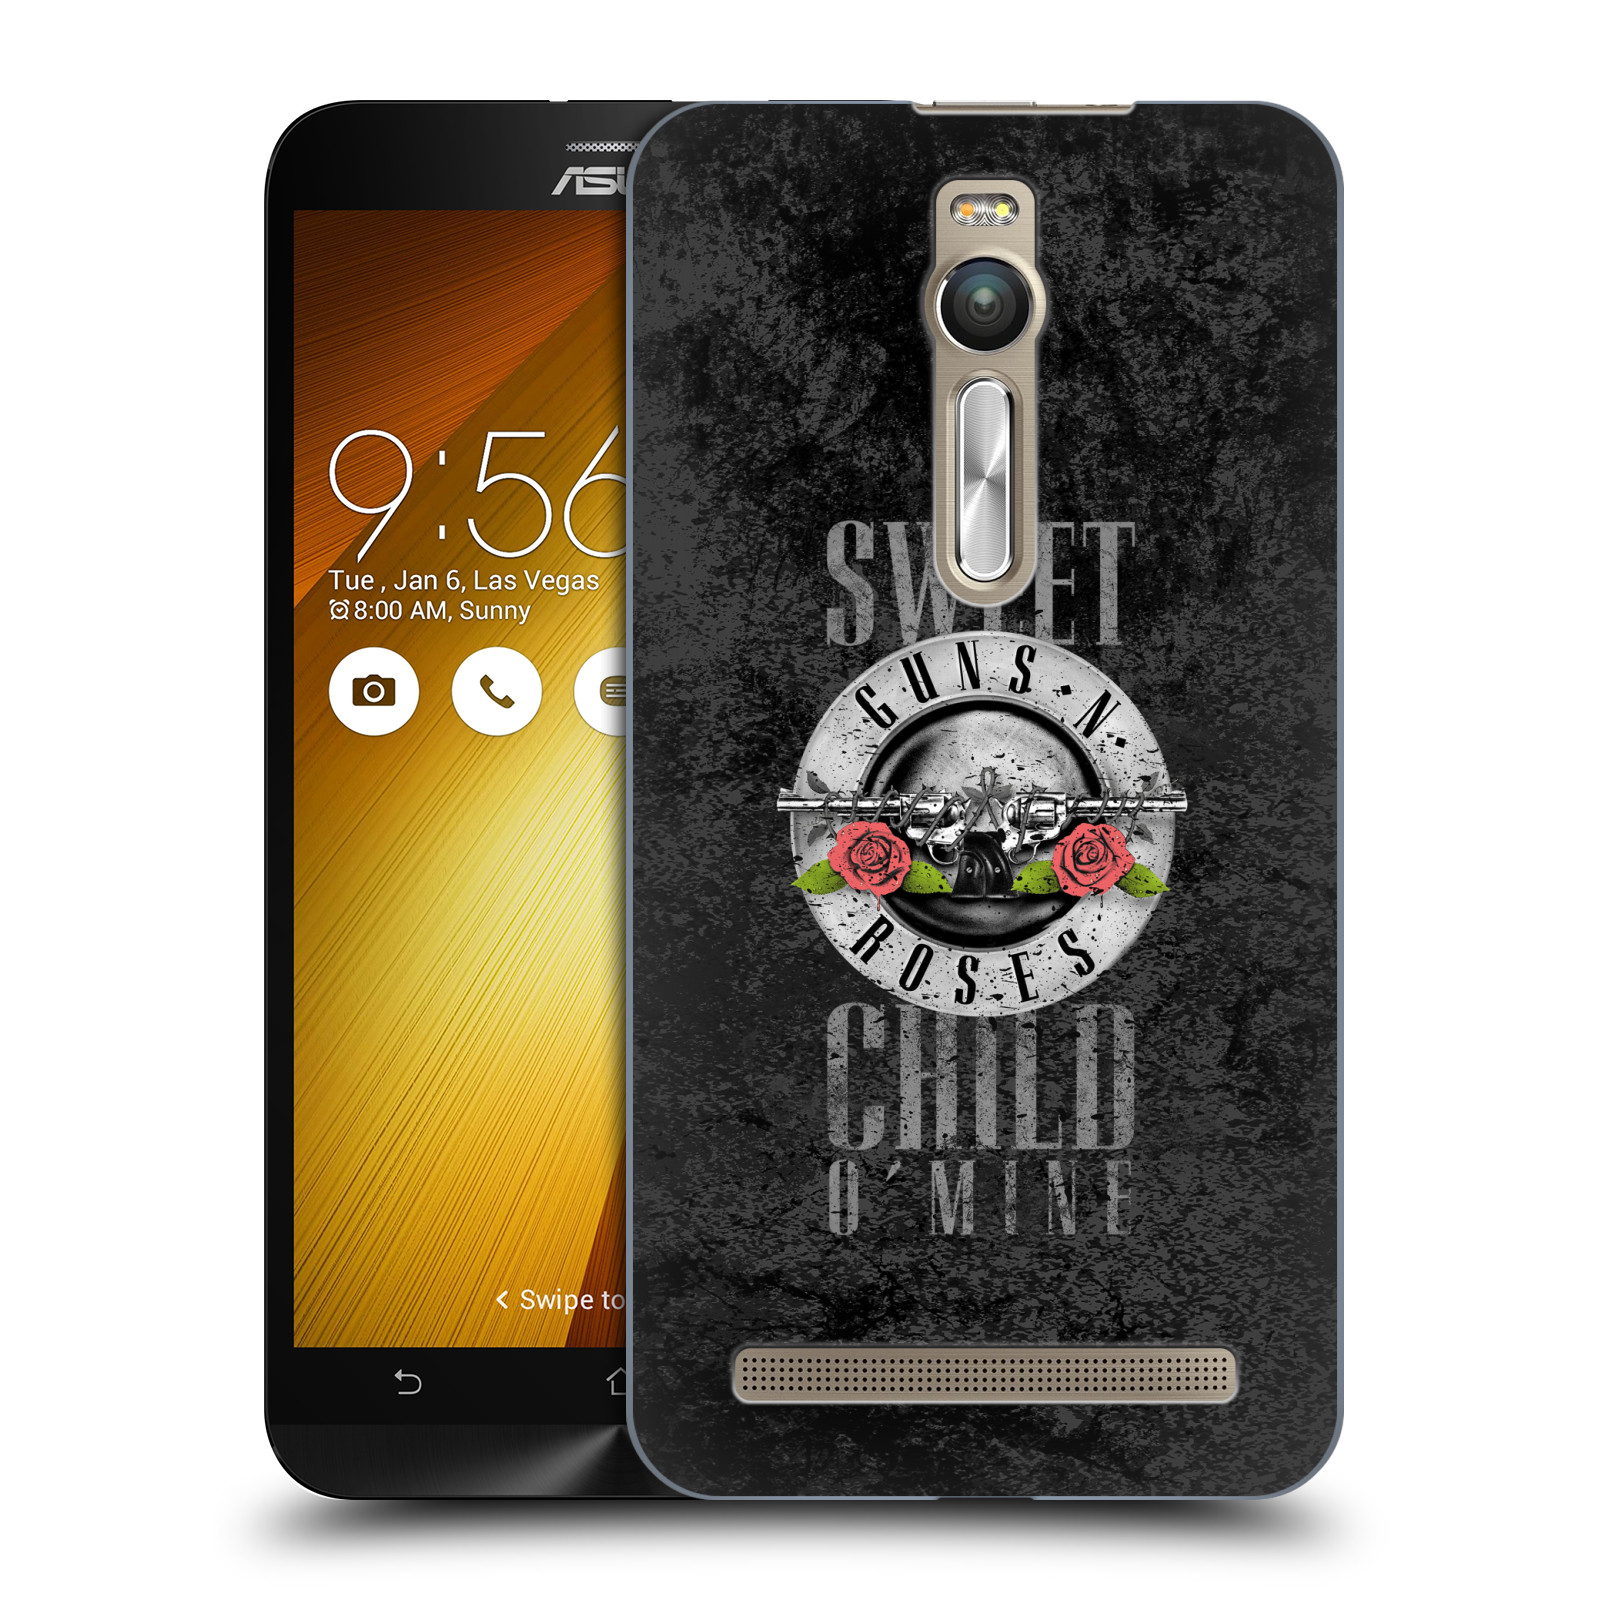 OFFICIAL GUNS N' ROSES VINTAGE HARD BACK CASE FOR ONEPLUS ASUS AMAZON